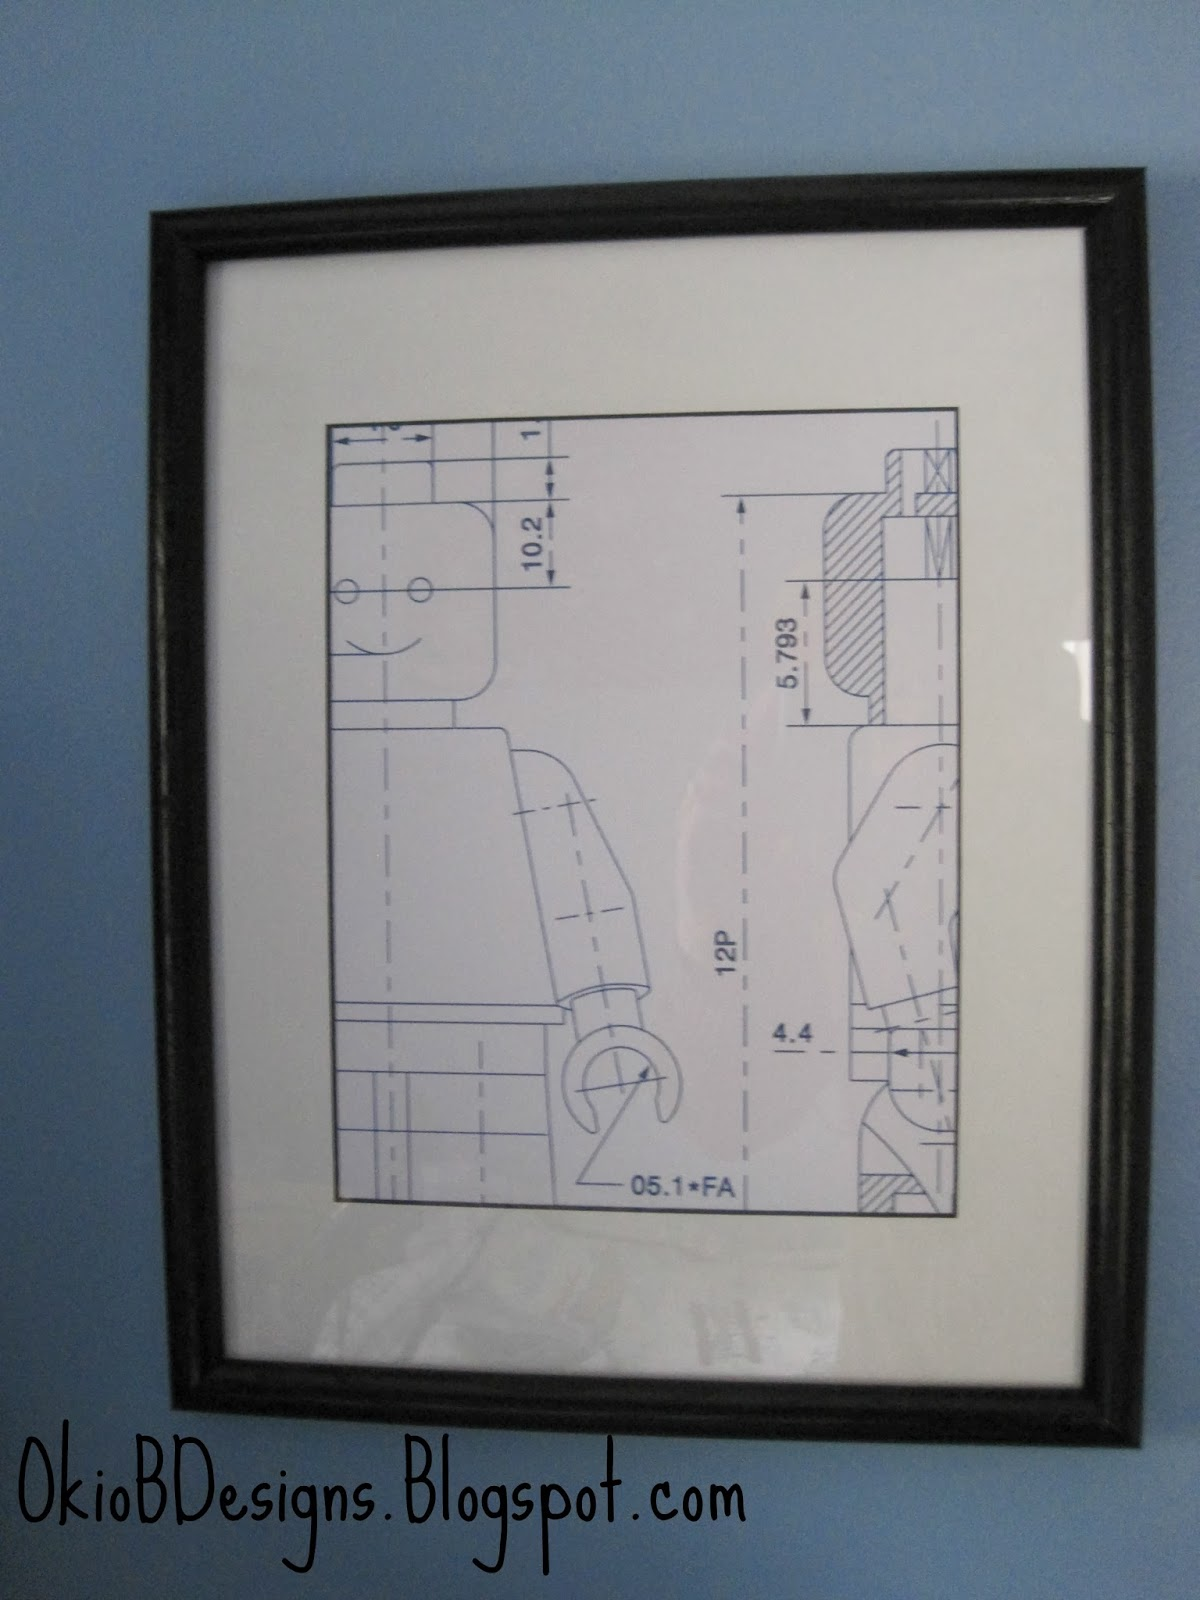 Framed lego blueprint for boys room okio b designs the one that was pinned i believe was from gilt and was 65 ouch my version cost about 4 i picked up the frame from our local church thrift store malvernweather Choice Image